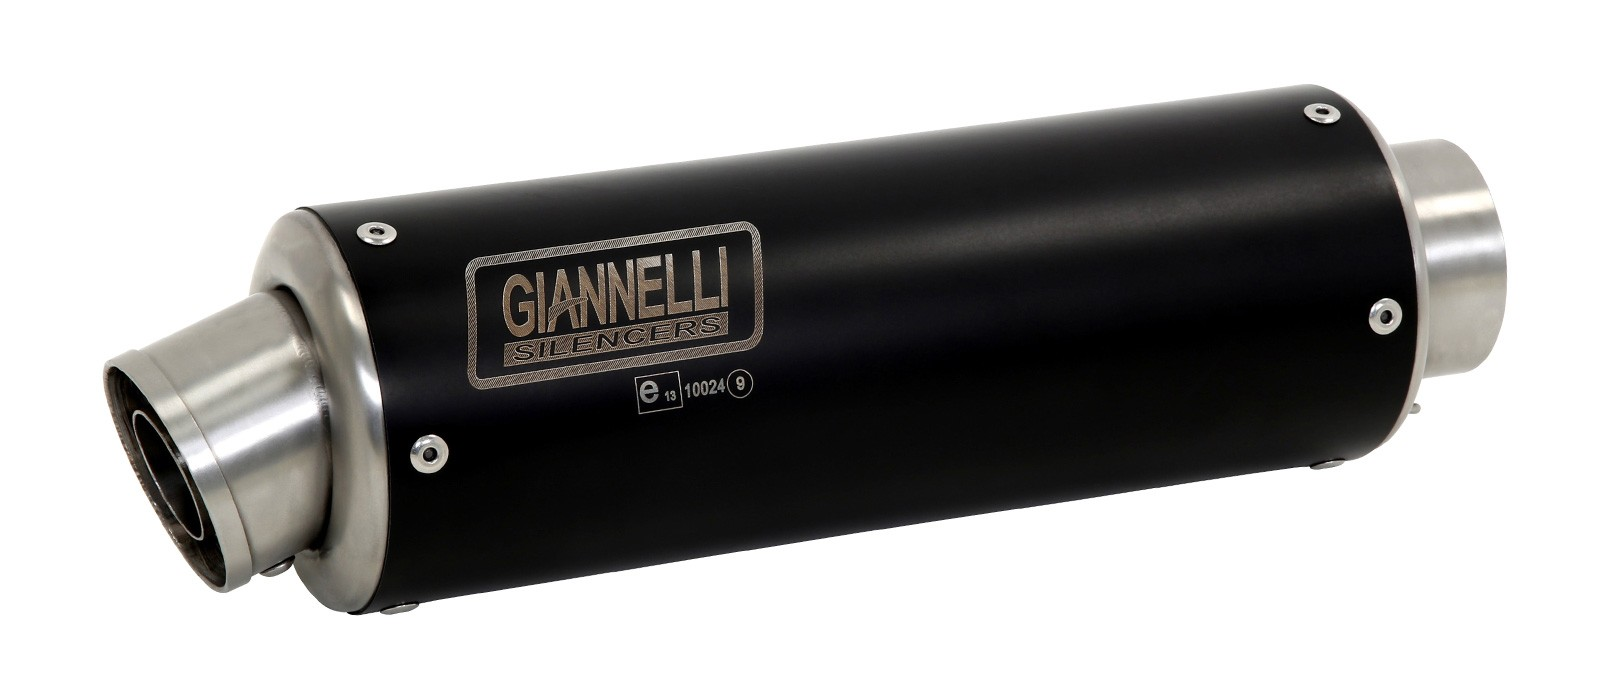 ESCAPES GIANNELLI YAMAHA - Sistema completo in black nicrom X-PRO con colector homologado Yamaha YZF-R 125 Giannelli 735